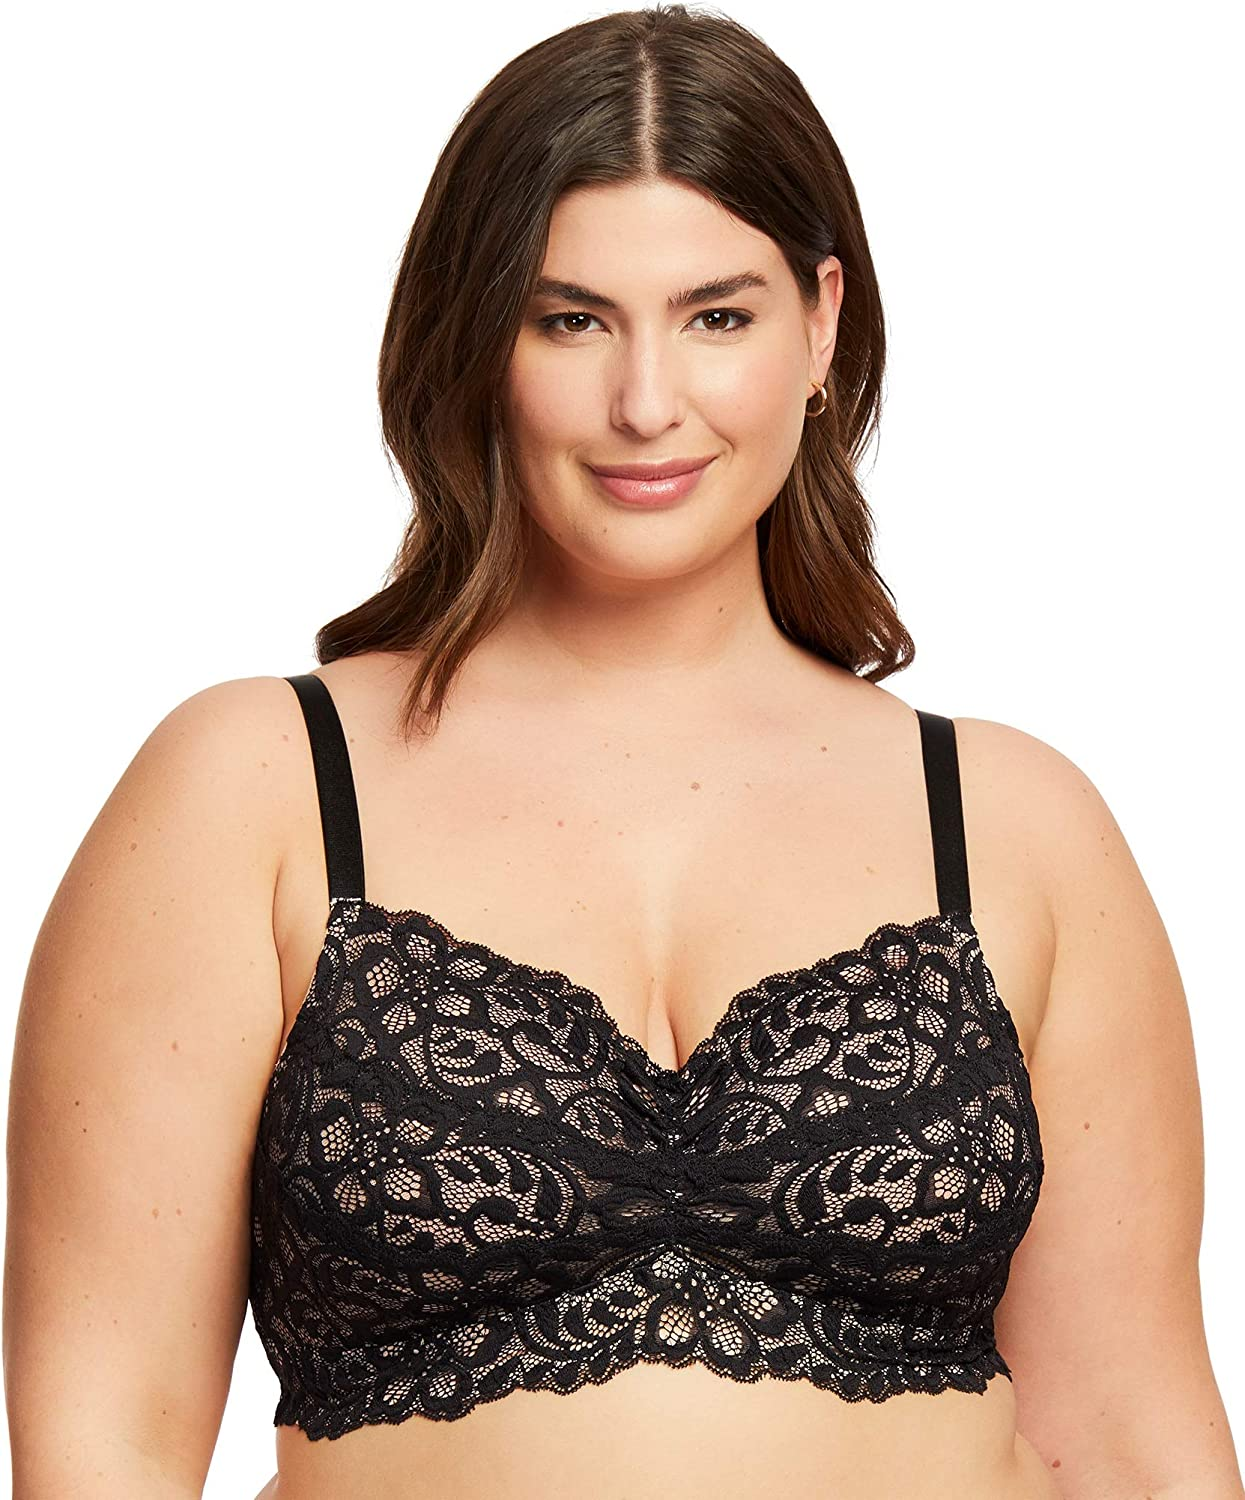 Women's Plus Size Lace Bralette Unpadded Wireless Full Coverage Soft Cup Lace Bra | D to G Cups